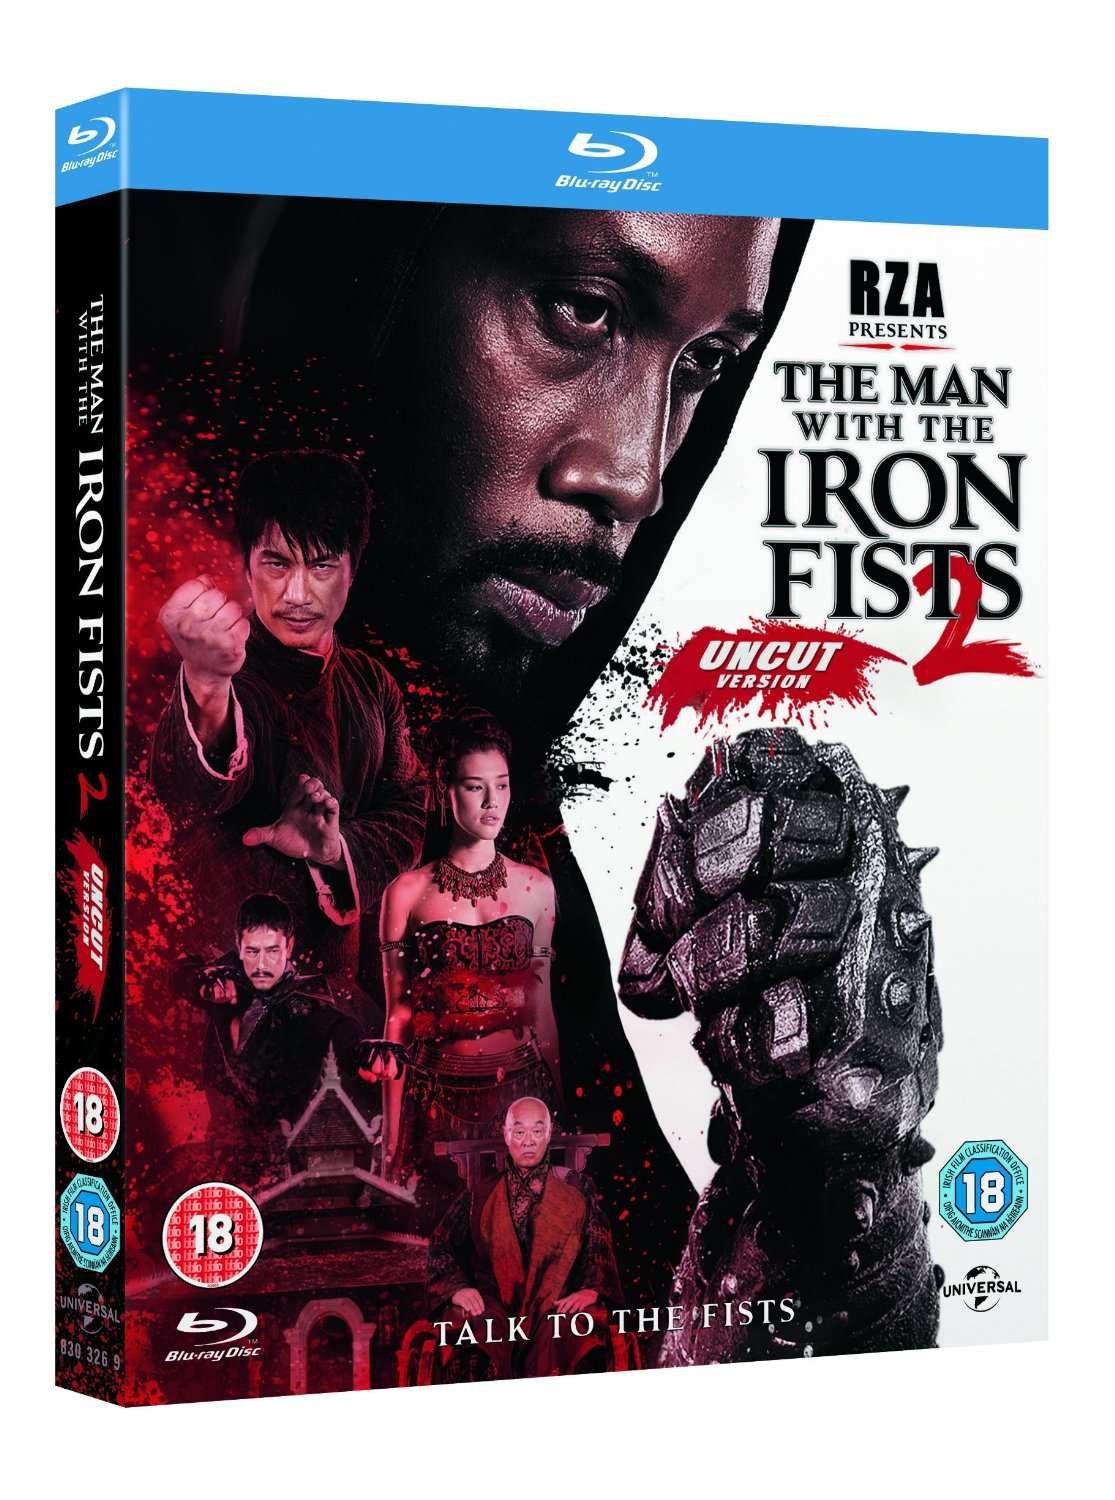 Man With The Iron Fists 2 Blu-ray review: Does it pack a punch?